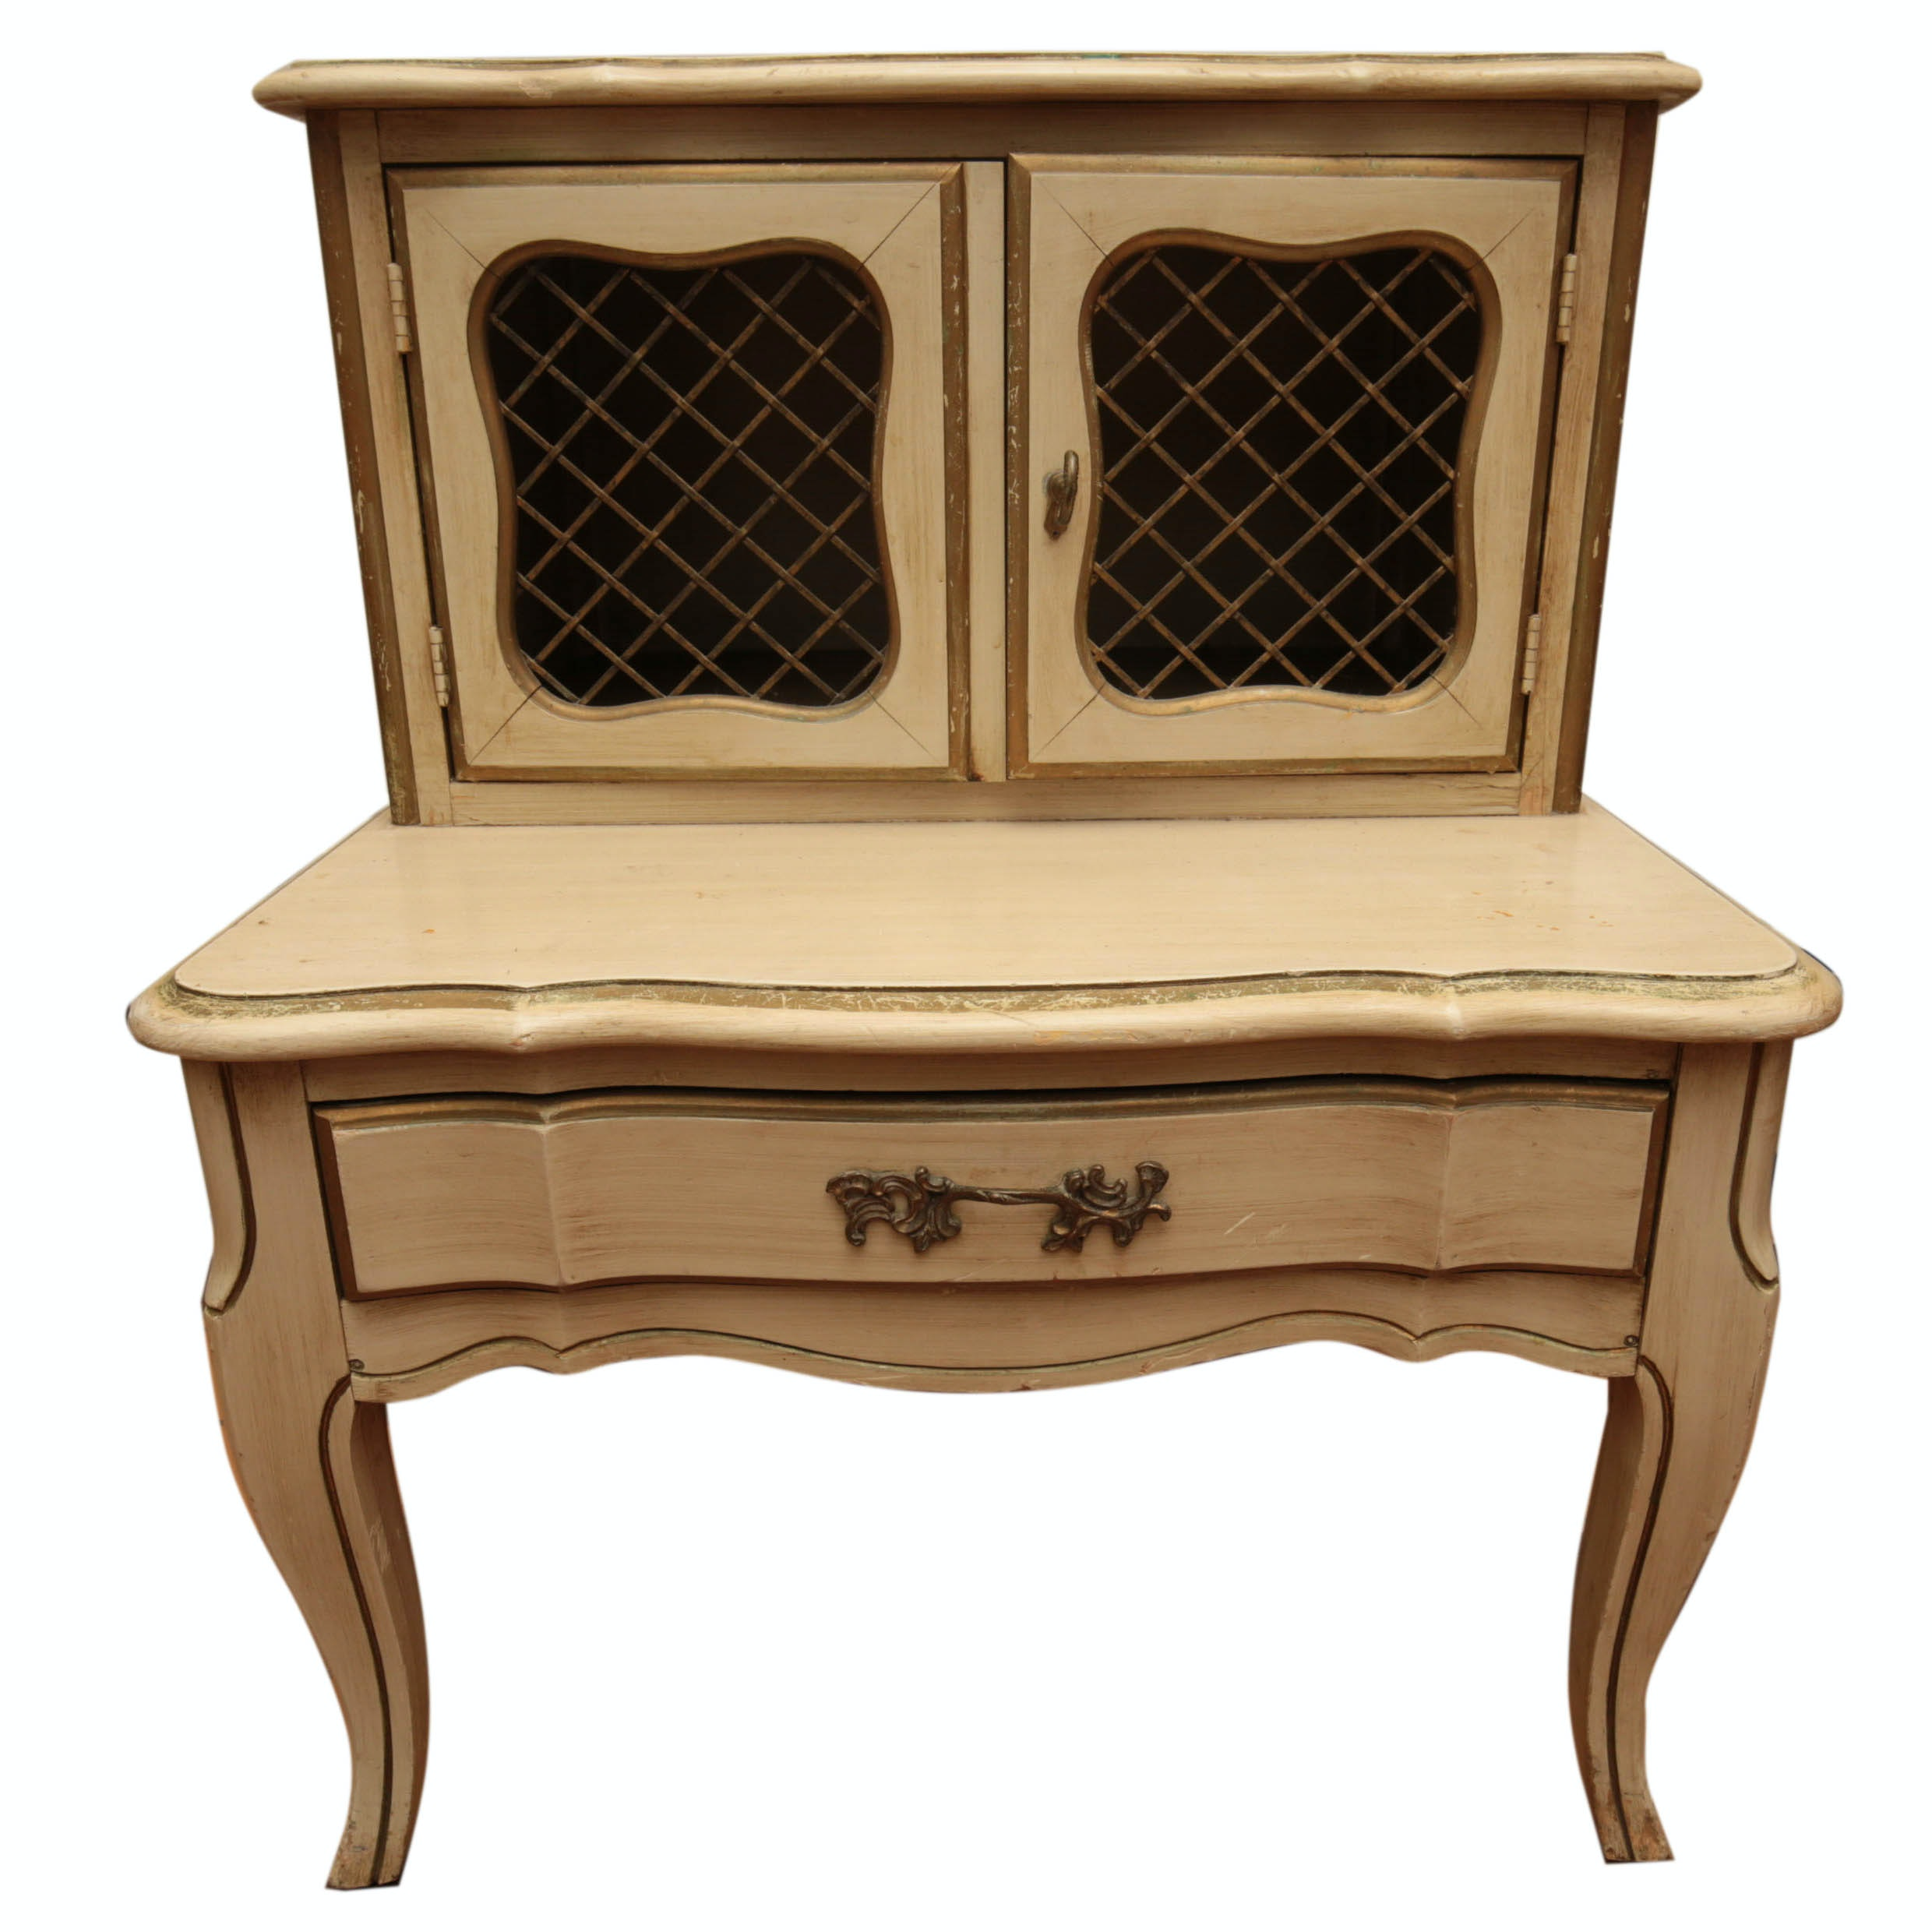 Vintage French Provincial Side Table By White Furniture ...